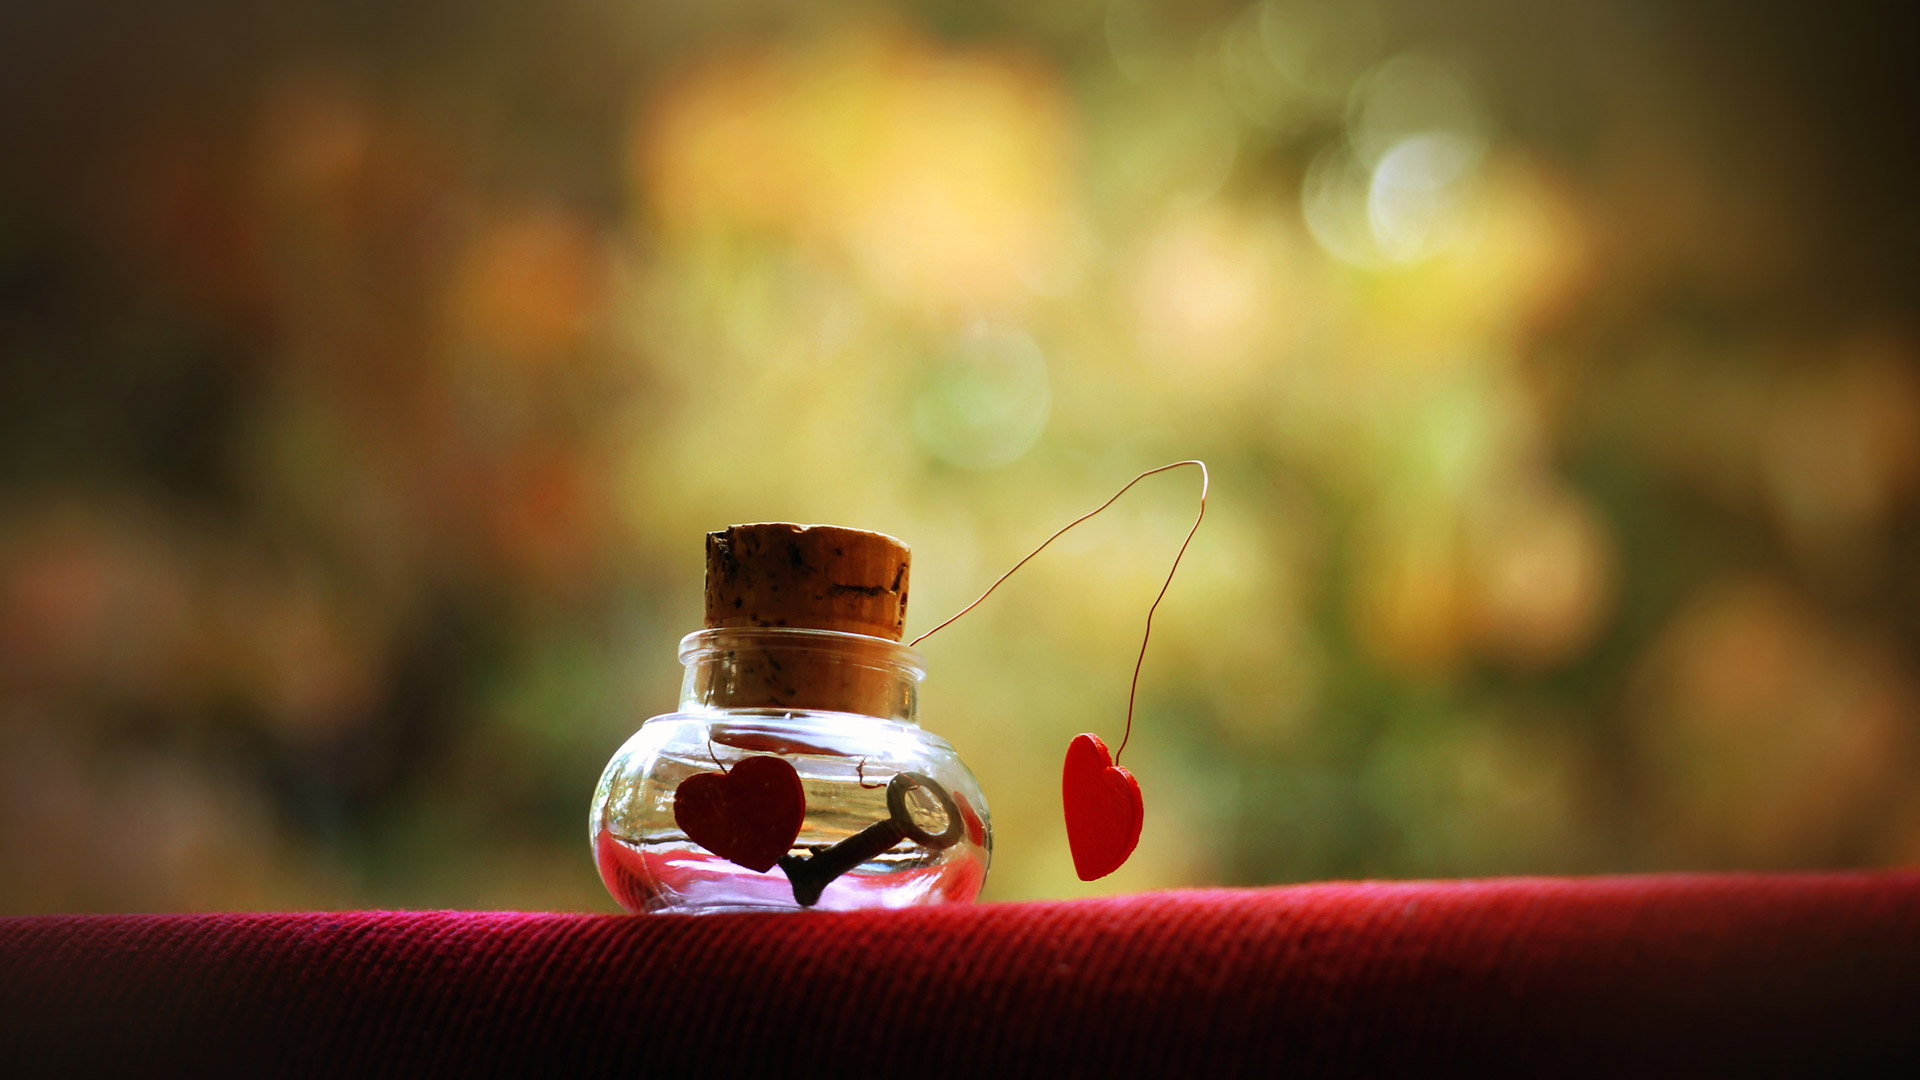 Wallpapers HD 1080p Love (39 Wallpapers) - Adorable Wallpapers